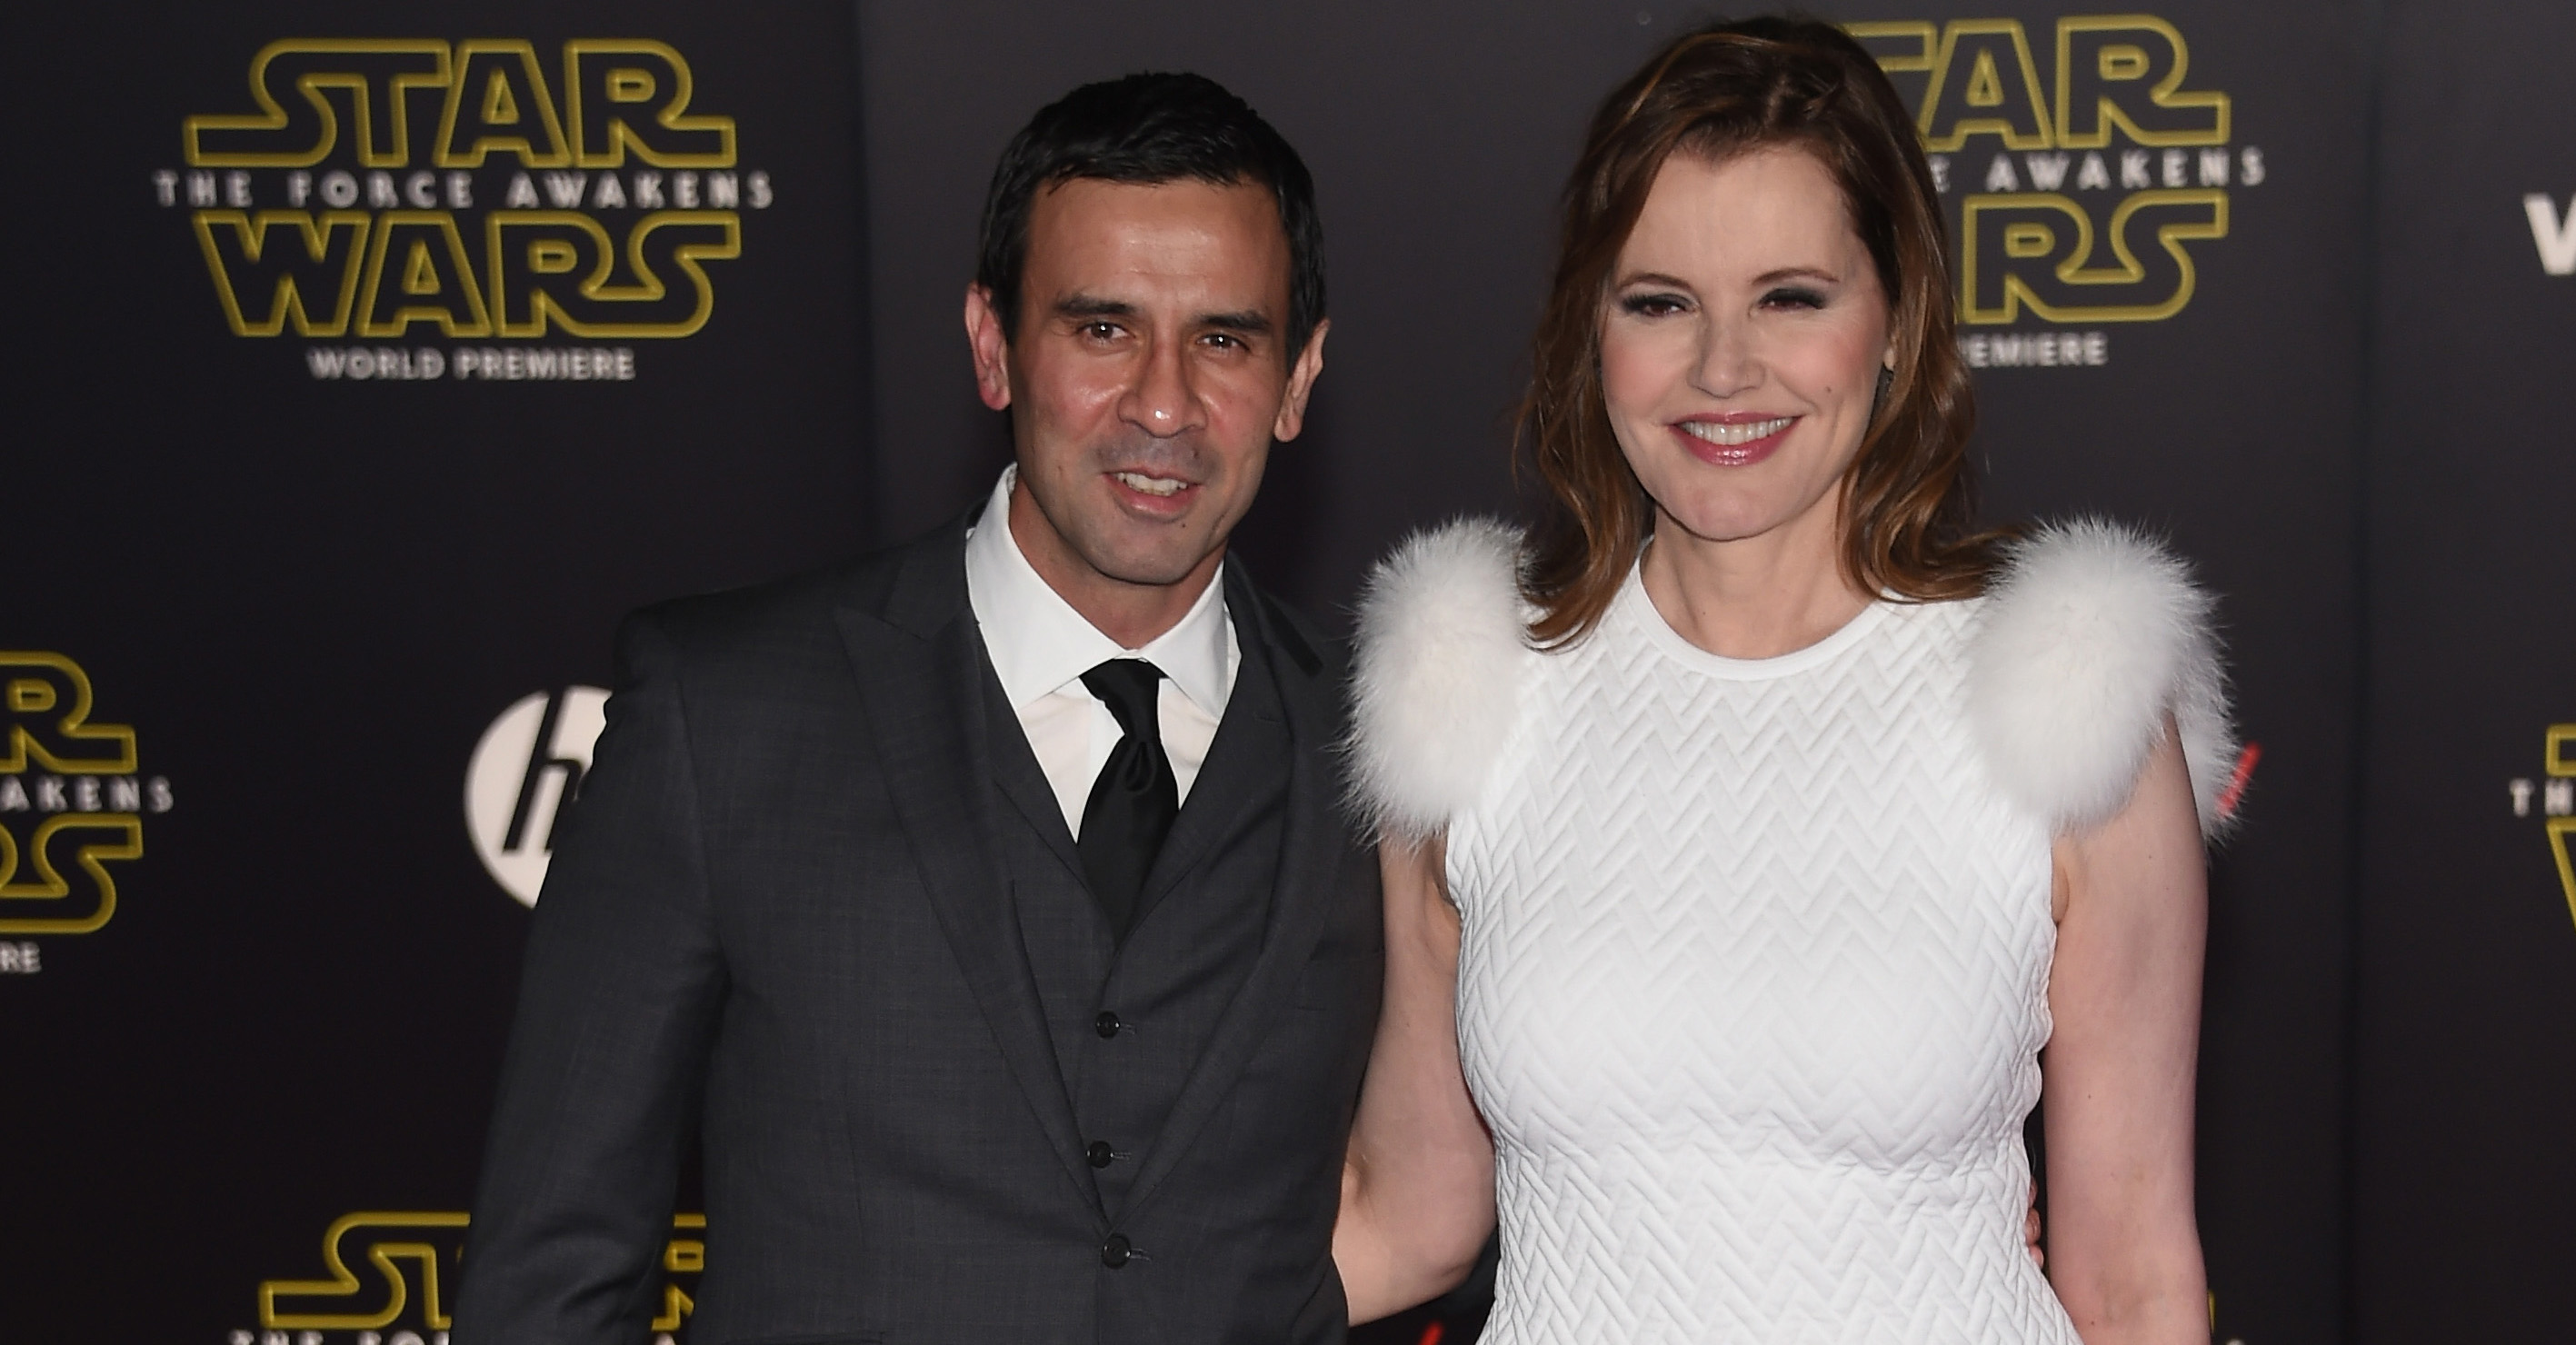 Reza Jarrahy and Geena Davis attend the premiere of Walt Disney Pictures and Lucasfilm's 'Star Wars: The Force Awakens' at the Dolby Theatre on December 14th, 2015 in Hollywood, California. (Photo by Ethan Miller/Getty Images)